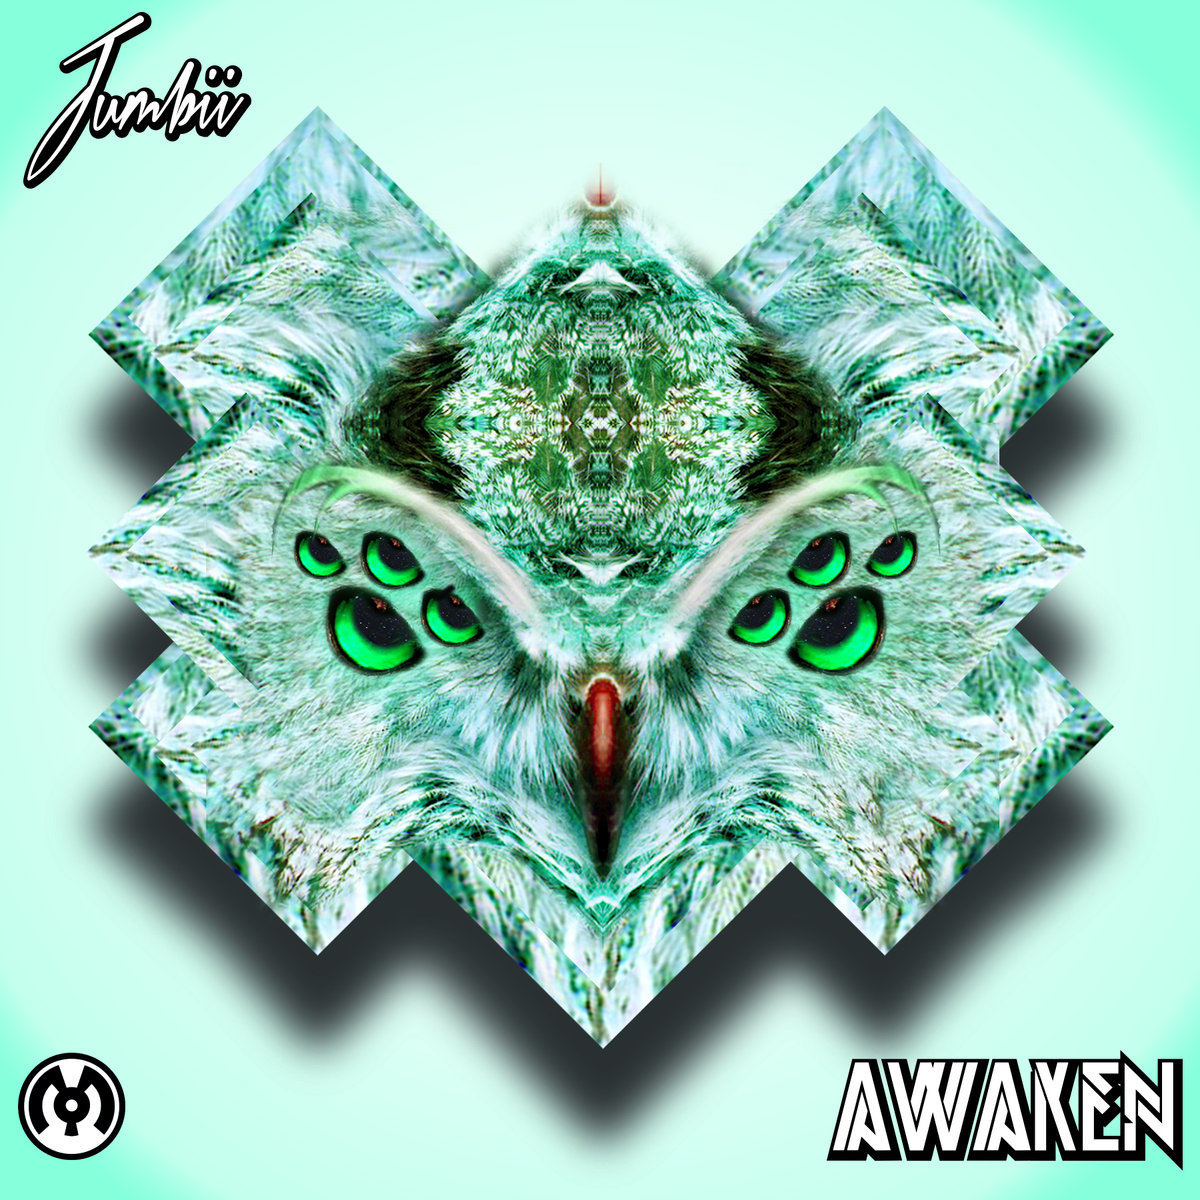 Jumbii - Throttle @ 'Awaken' album (electronic, dubstep)